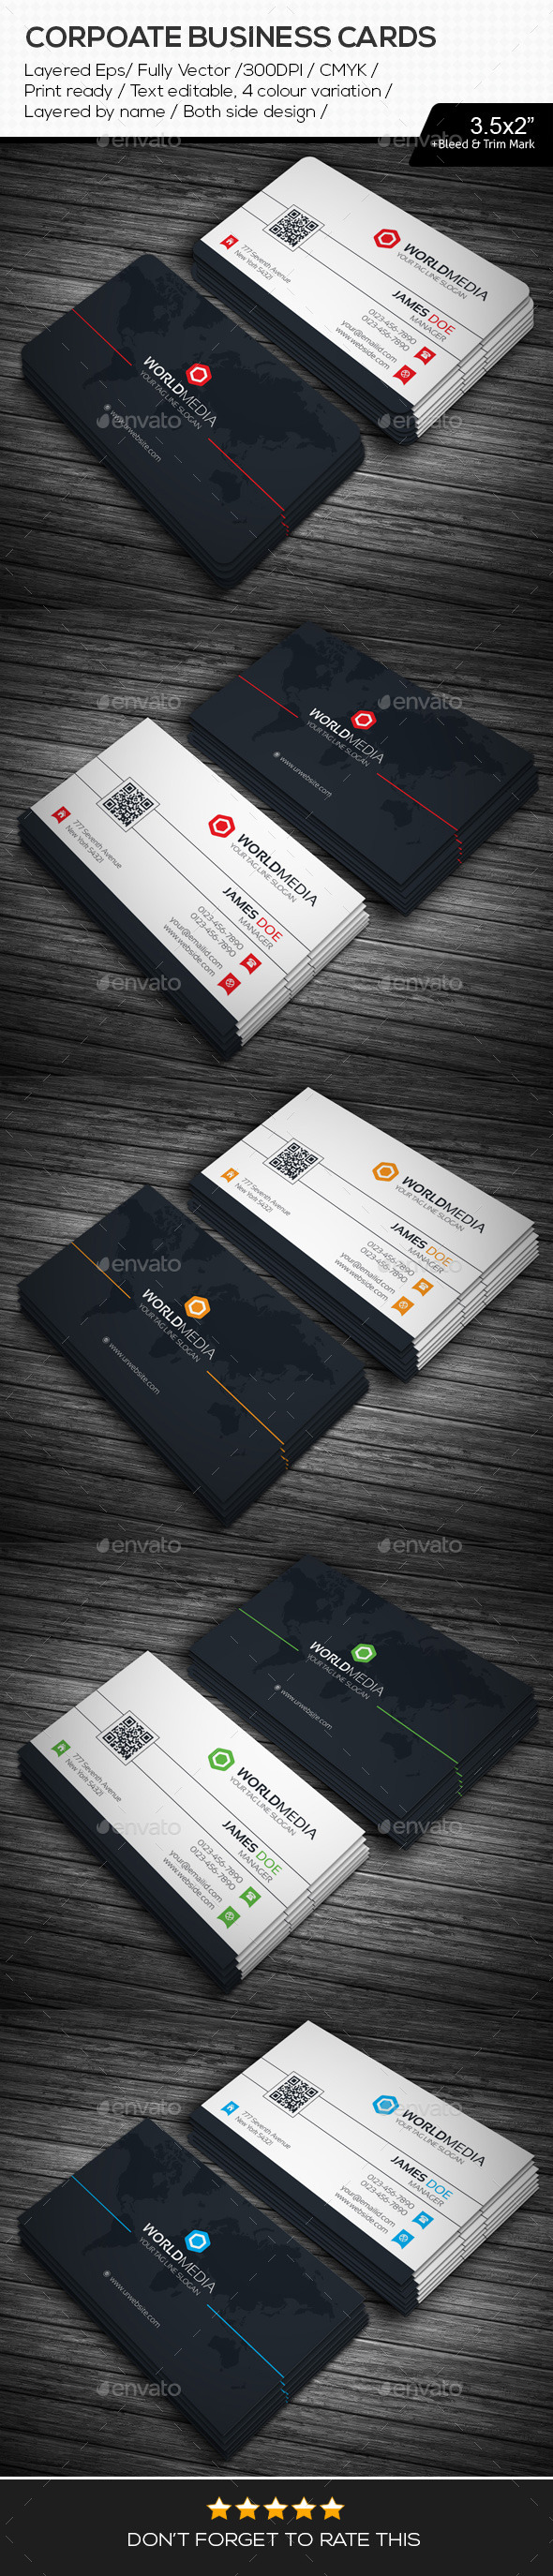 GraphicRiver World Media Corporate Business Cards 11115004